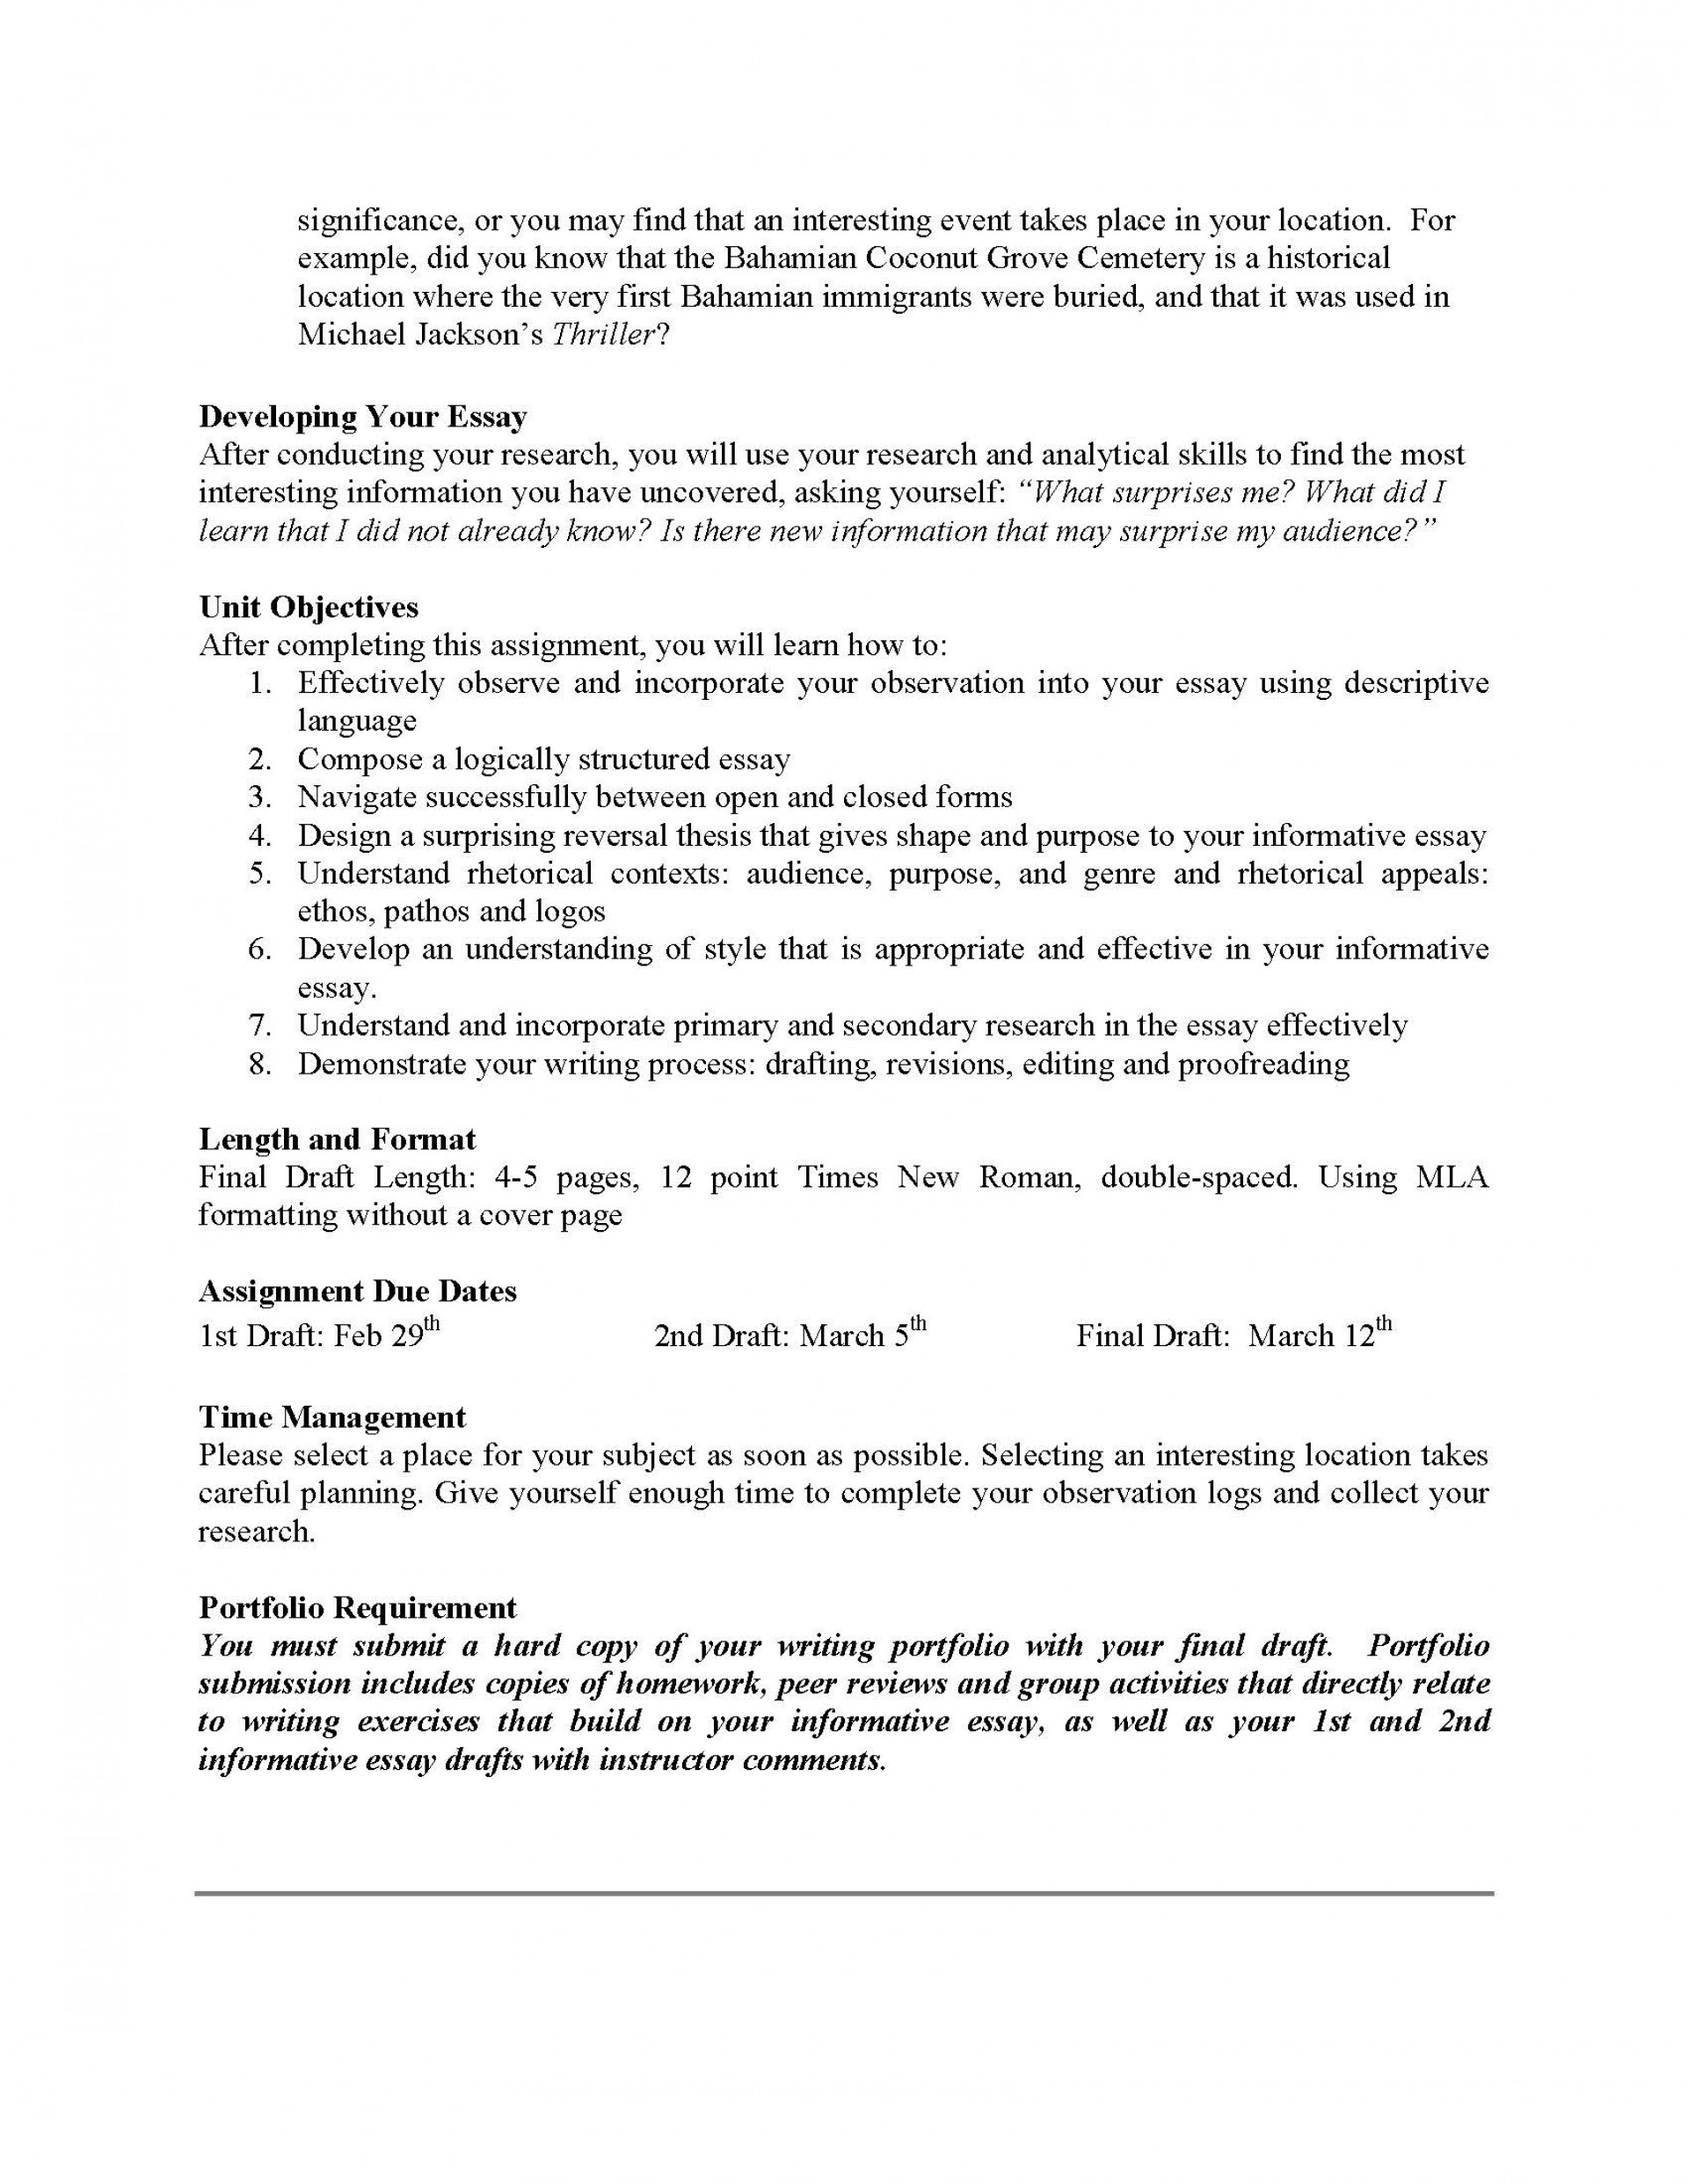 010 Informative Essay Ideas Unit Assignment Page 2 Wondrous Prompts Writing Topics 4th Grade Expository Middle School 1920